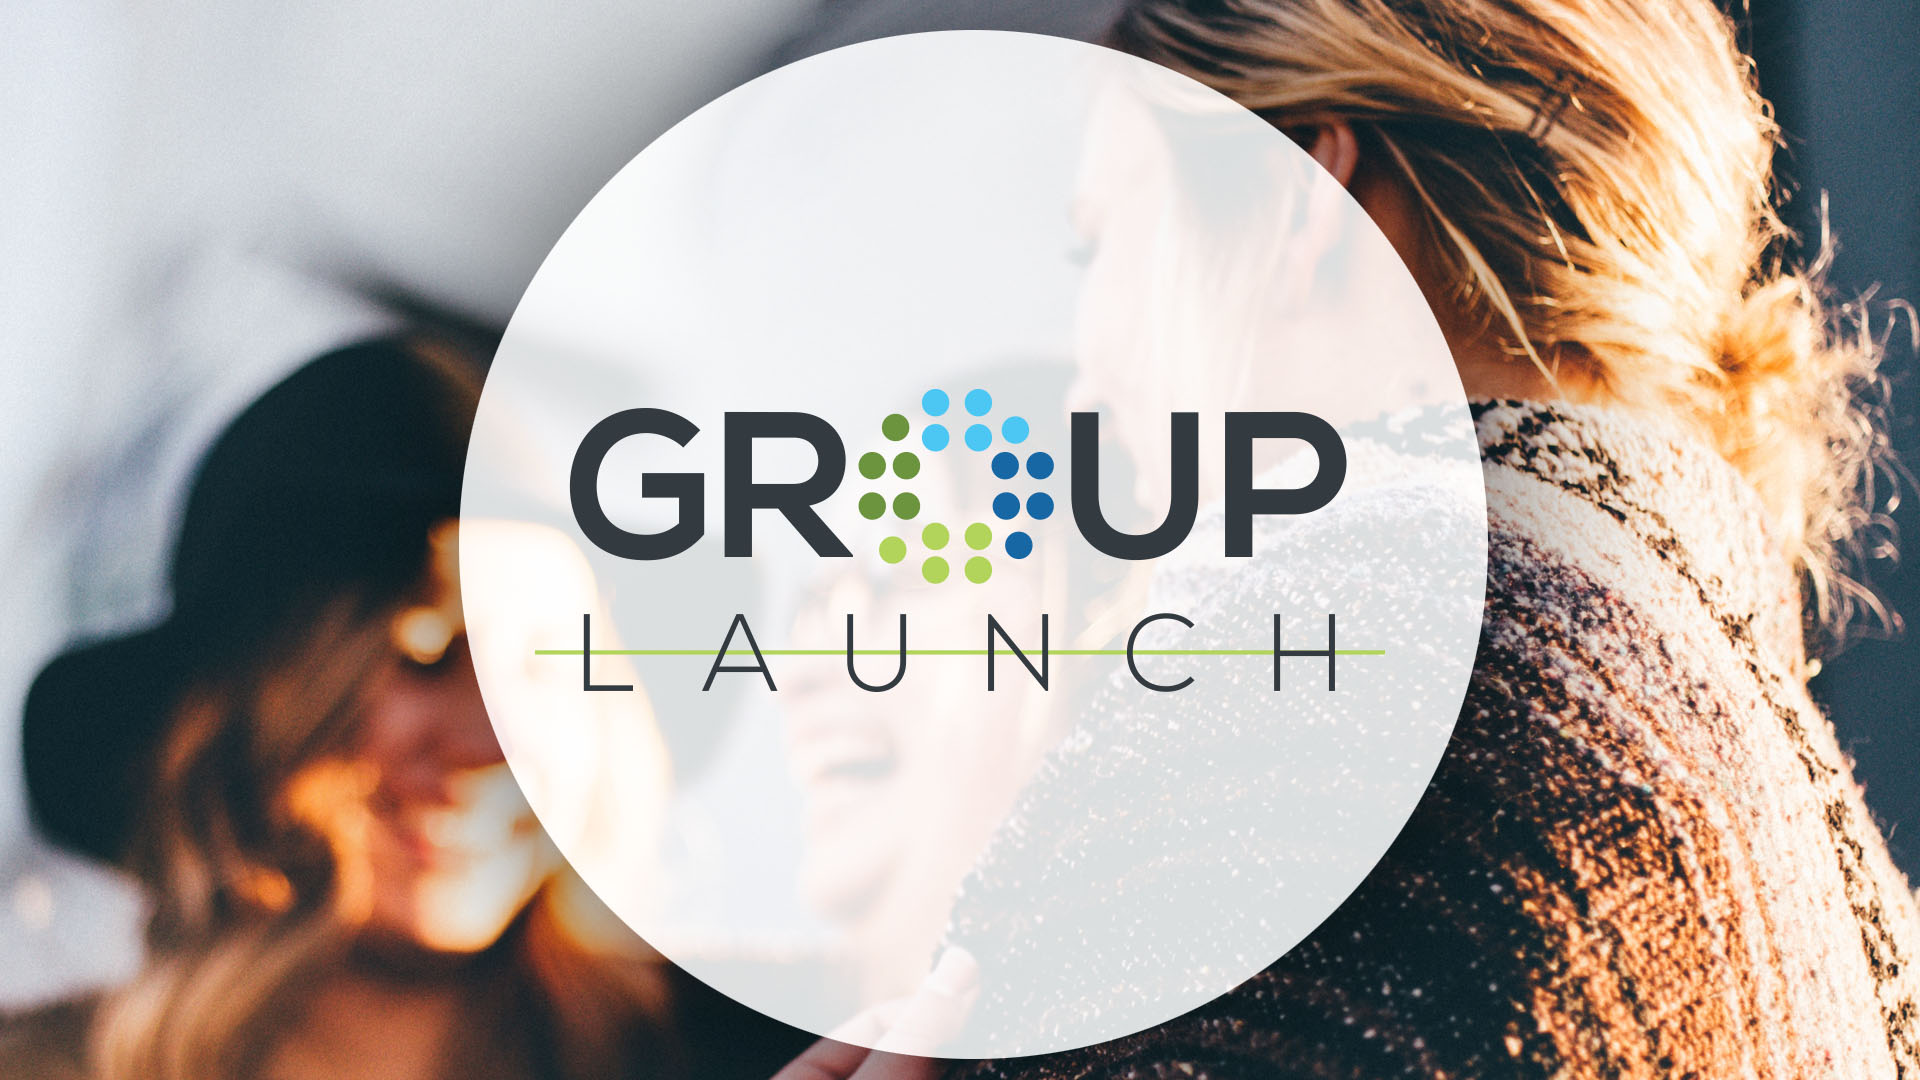 Group Launch - OCTOBER 14 // 2:00 PM // ALL CAMPUSESDON'T DO LIFE ALONE. COME TO GROUP LAUNCH AND LET US HELP YOU FIND COMMUNITY!At GroupLaunch, we partner with you to create a fun and friendly environment where you can connect with others in a similar stage of life to form a new Hope Fellowship Group. GroupLaunch is a four week commitment where you'll develop friendships with others, gain an understanding of biblical community, and be equipped to start a strong new group.A host and volunteers will be on hand to help you navigate the process of meeting others and connecting to a group. Once GroupLaunch is finished, your new group will kickoff with a plan and curriculum to get you started and put you in the best possible position to foster long term community among friends at Hope Fellowship.